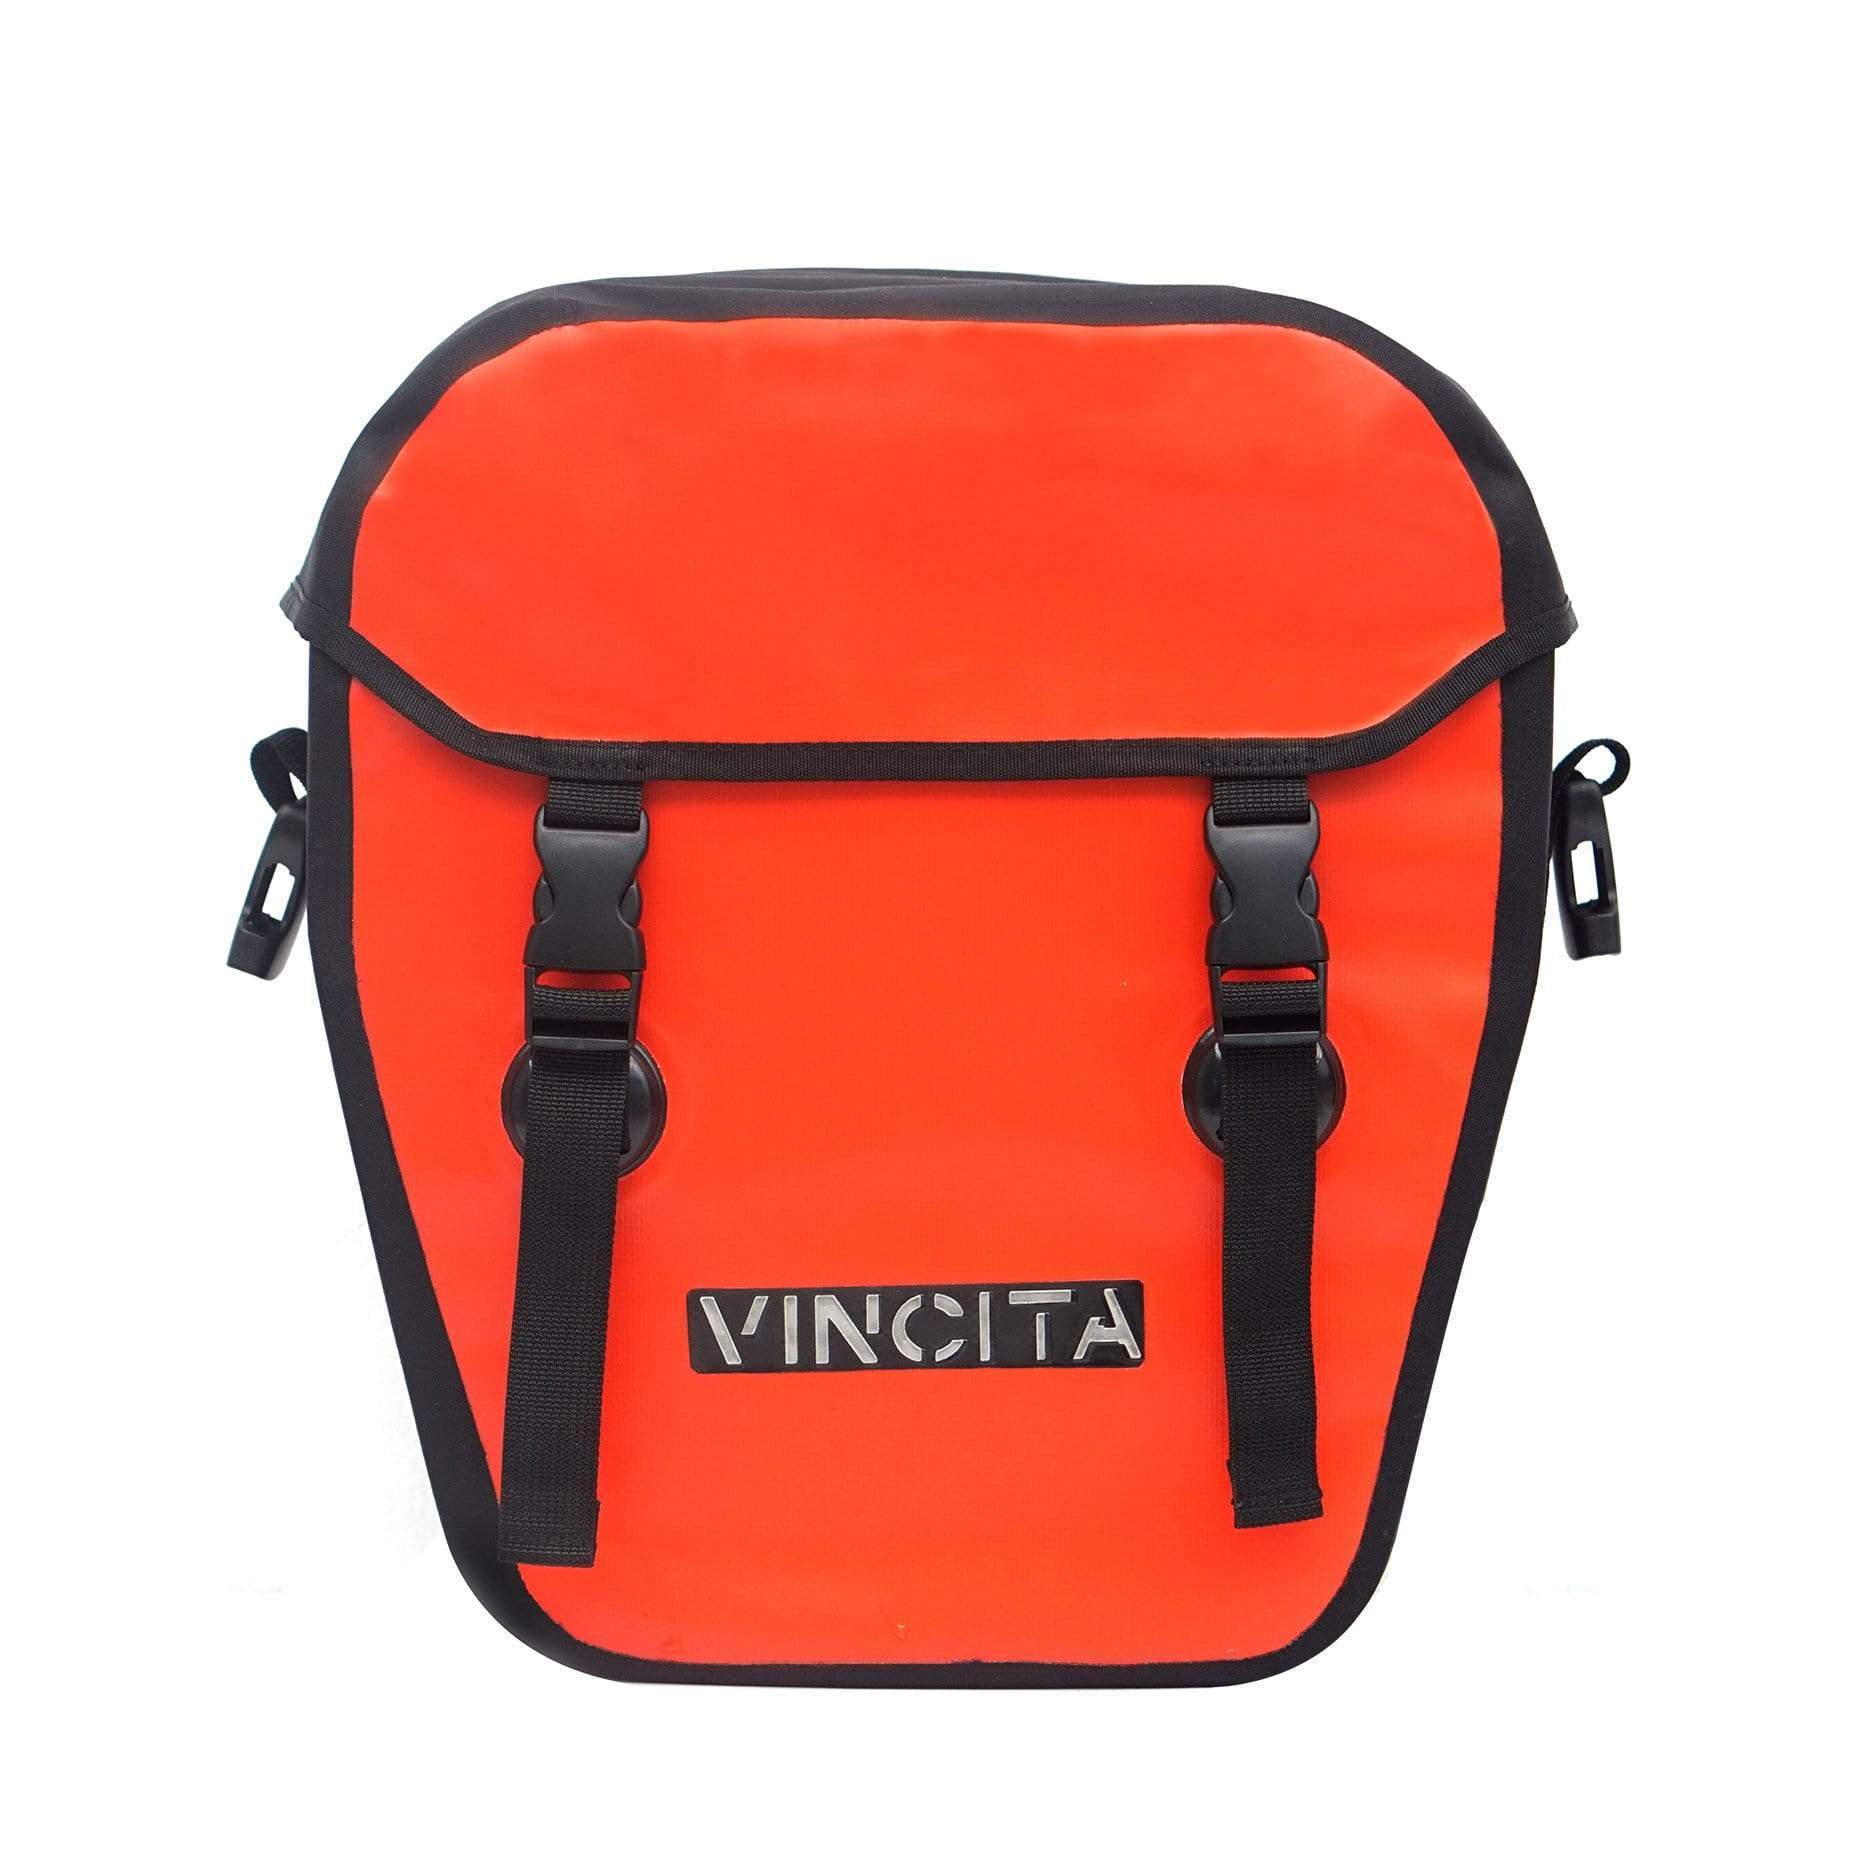 vincitabikebag bicycle bag Red Single Pannier Waterproof L with Cover